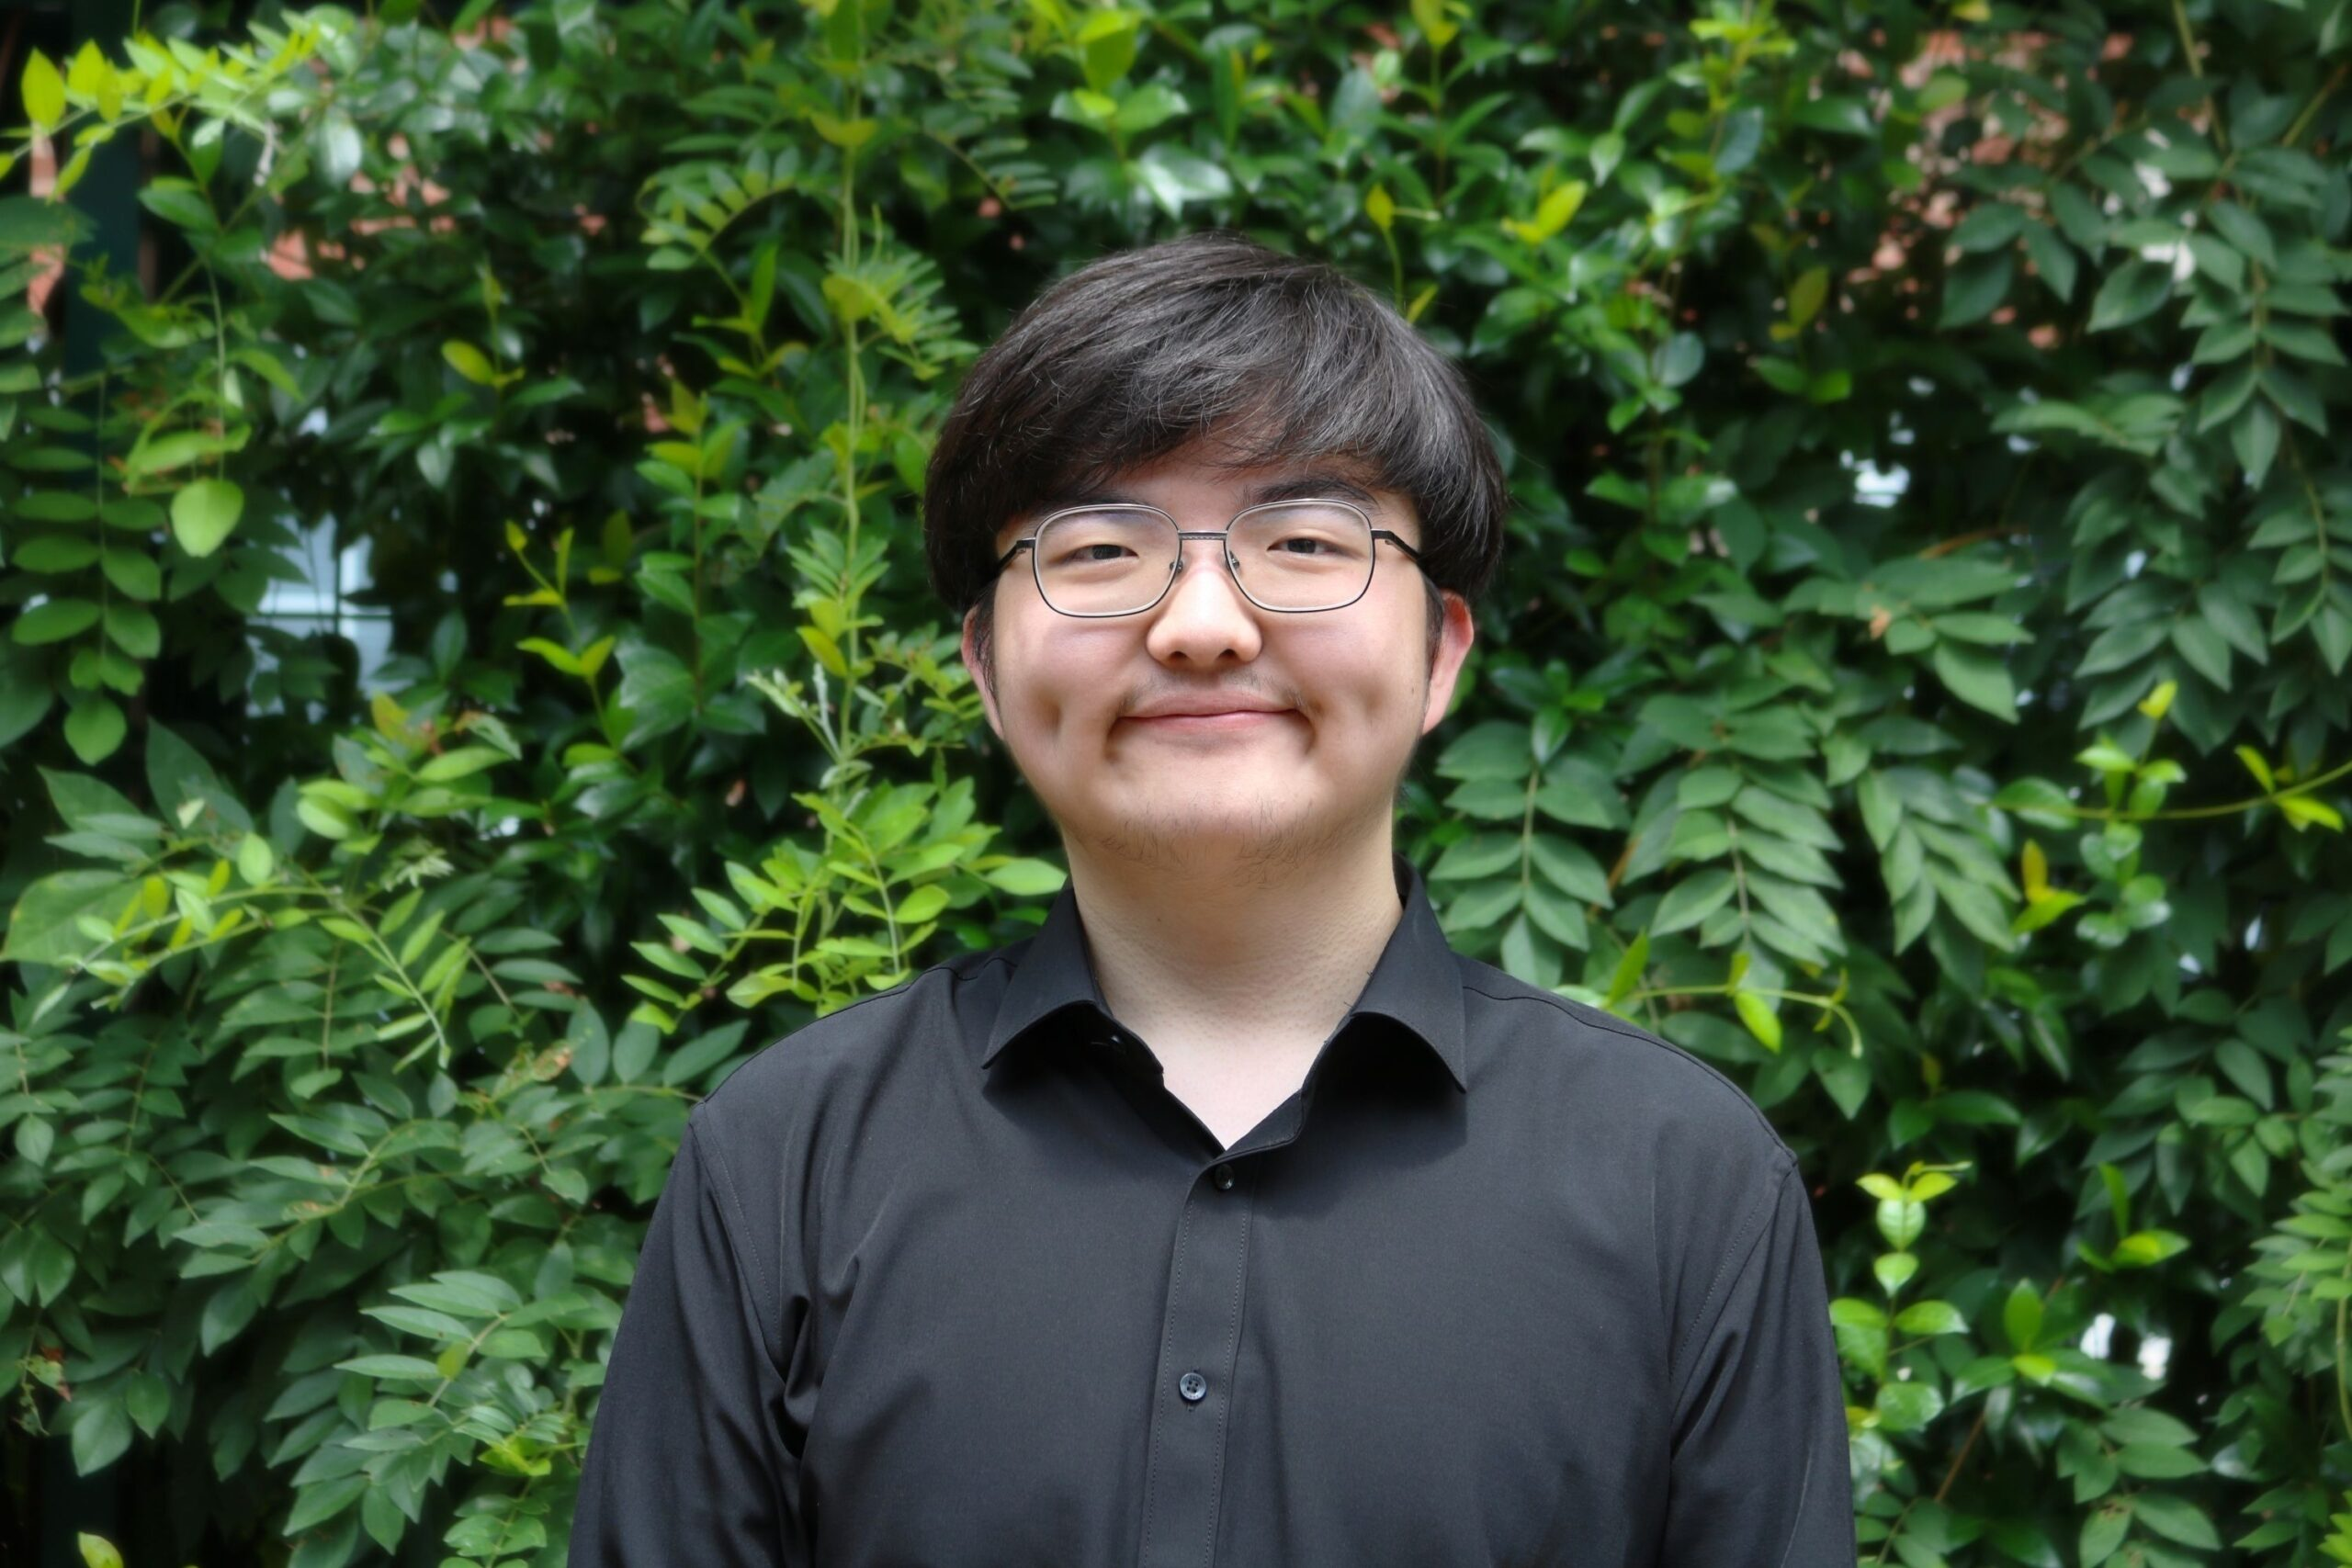 young asian man in black dress shirt with wire rim eyeglasses smiling in front of greenery wall